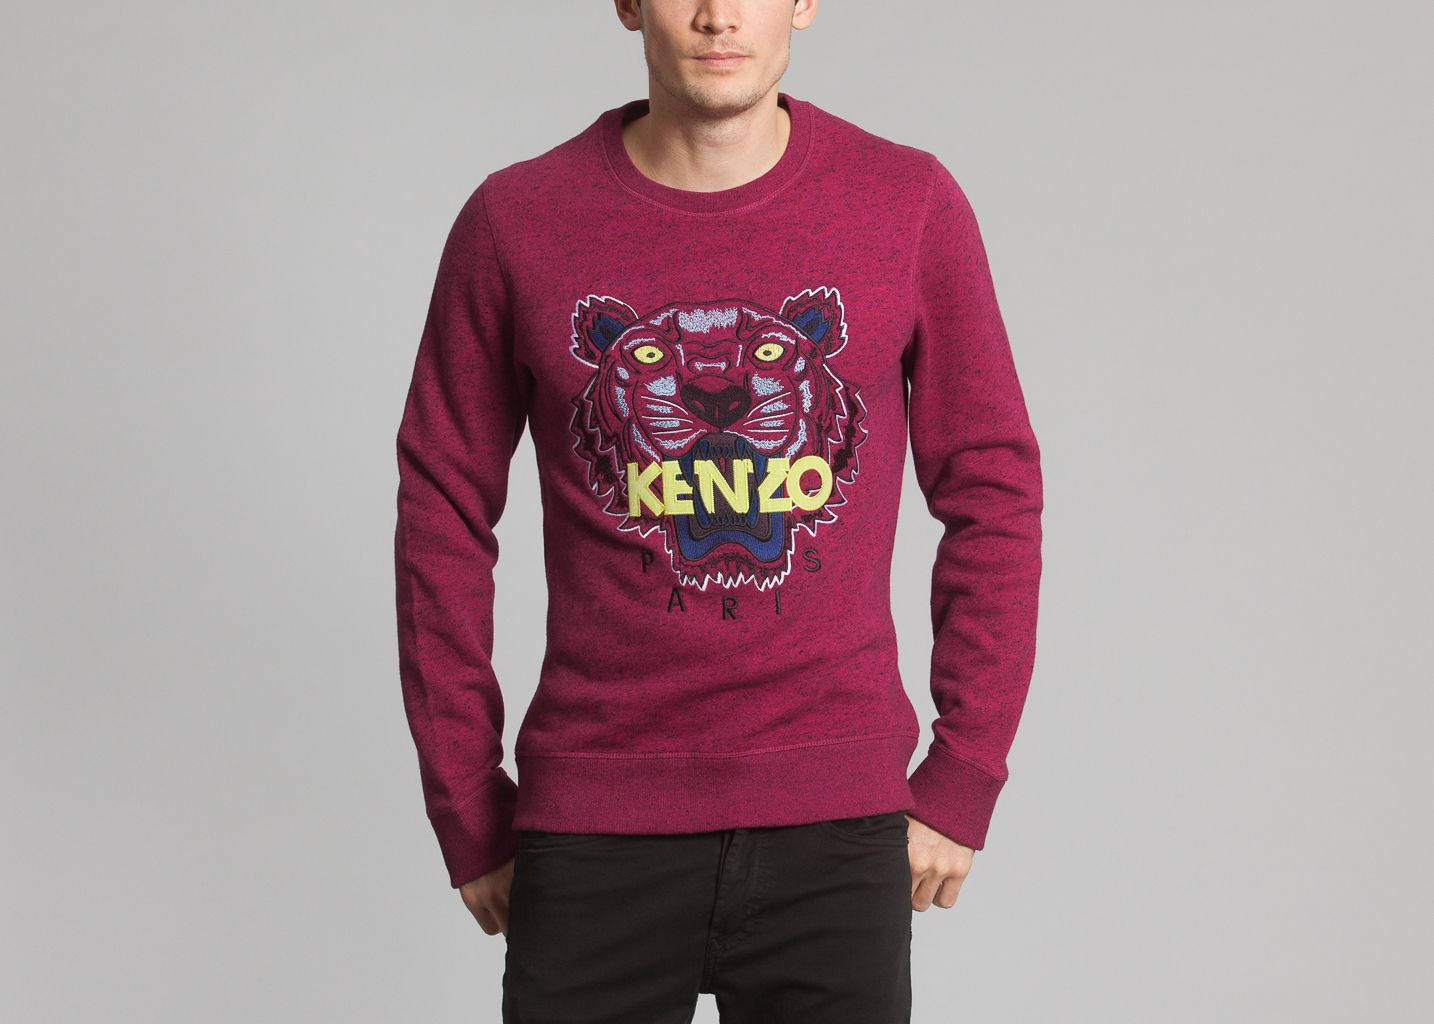 kenzo homme sweat pull kenzo pas cher basket kenzo homme chaussure kenzo homme. Black Bedroom Furniture Sets. Home Design Ideas